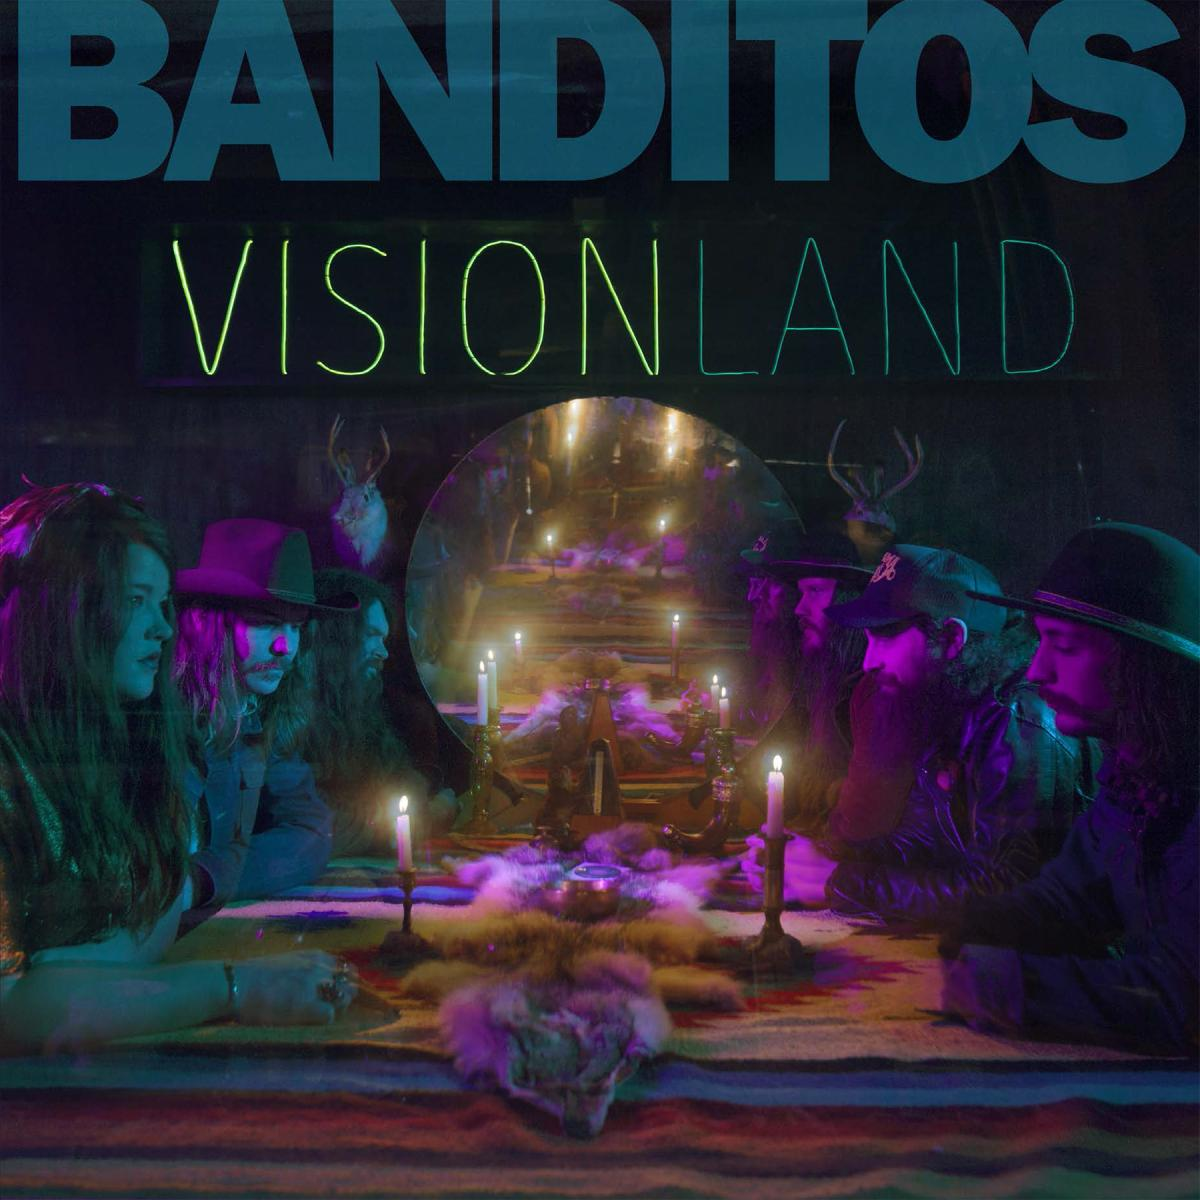 Banditos Visionland Album Cover Art